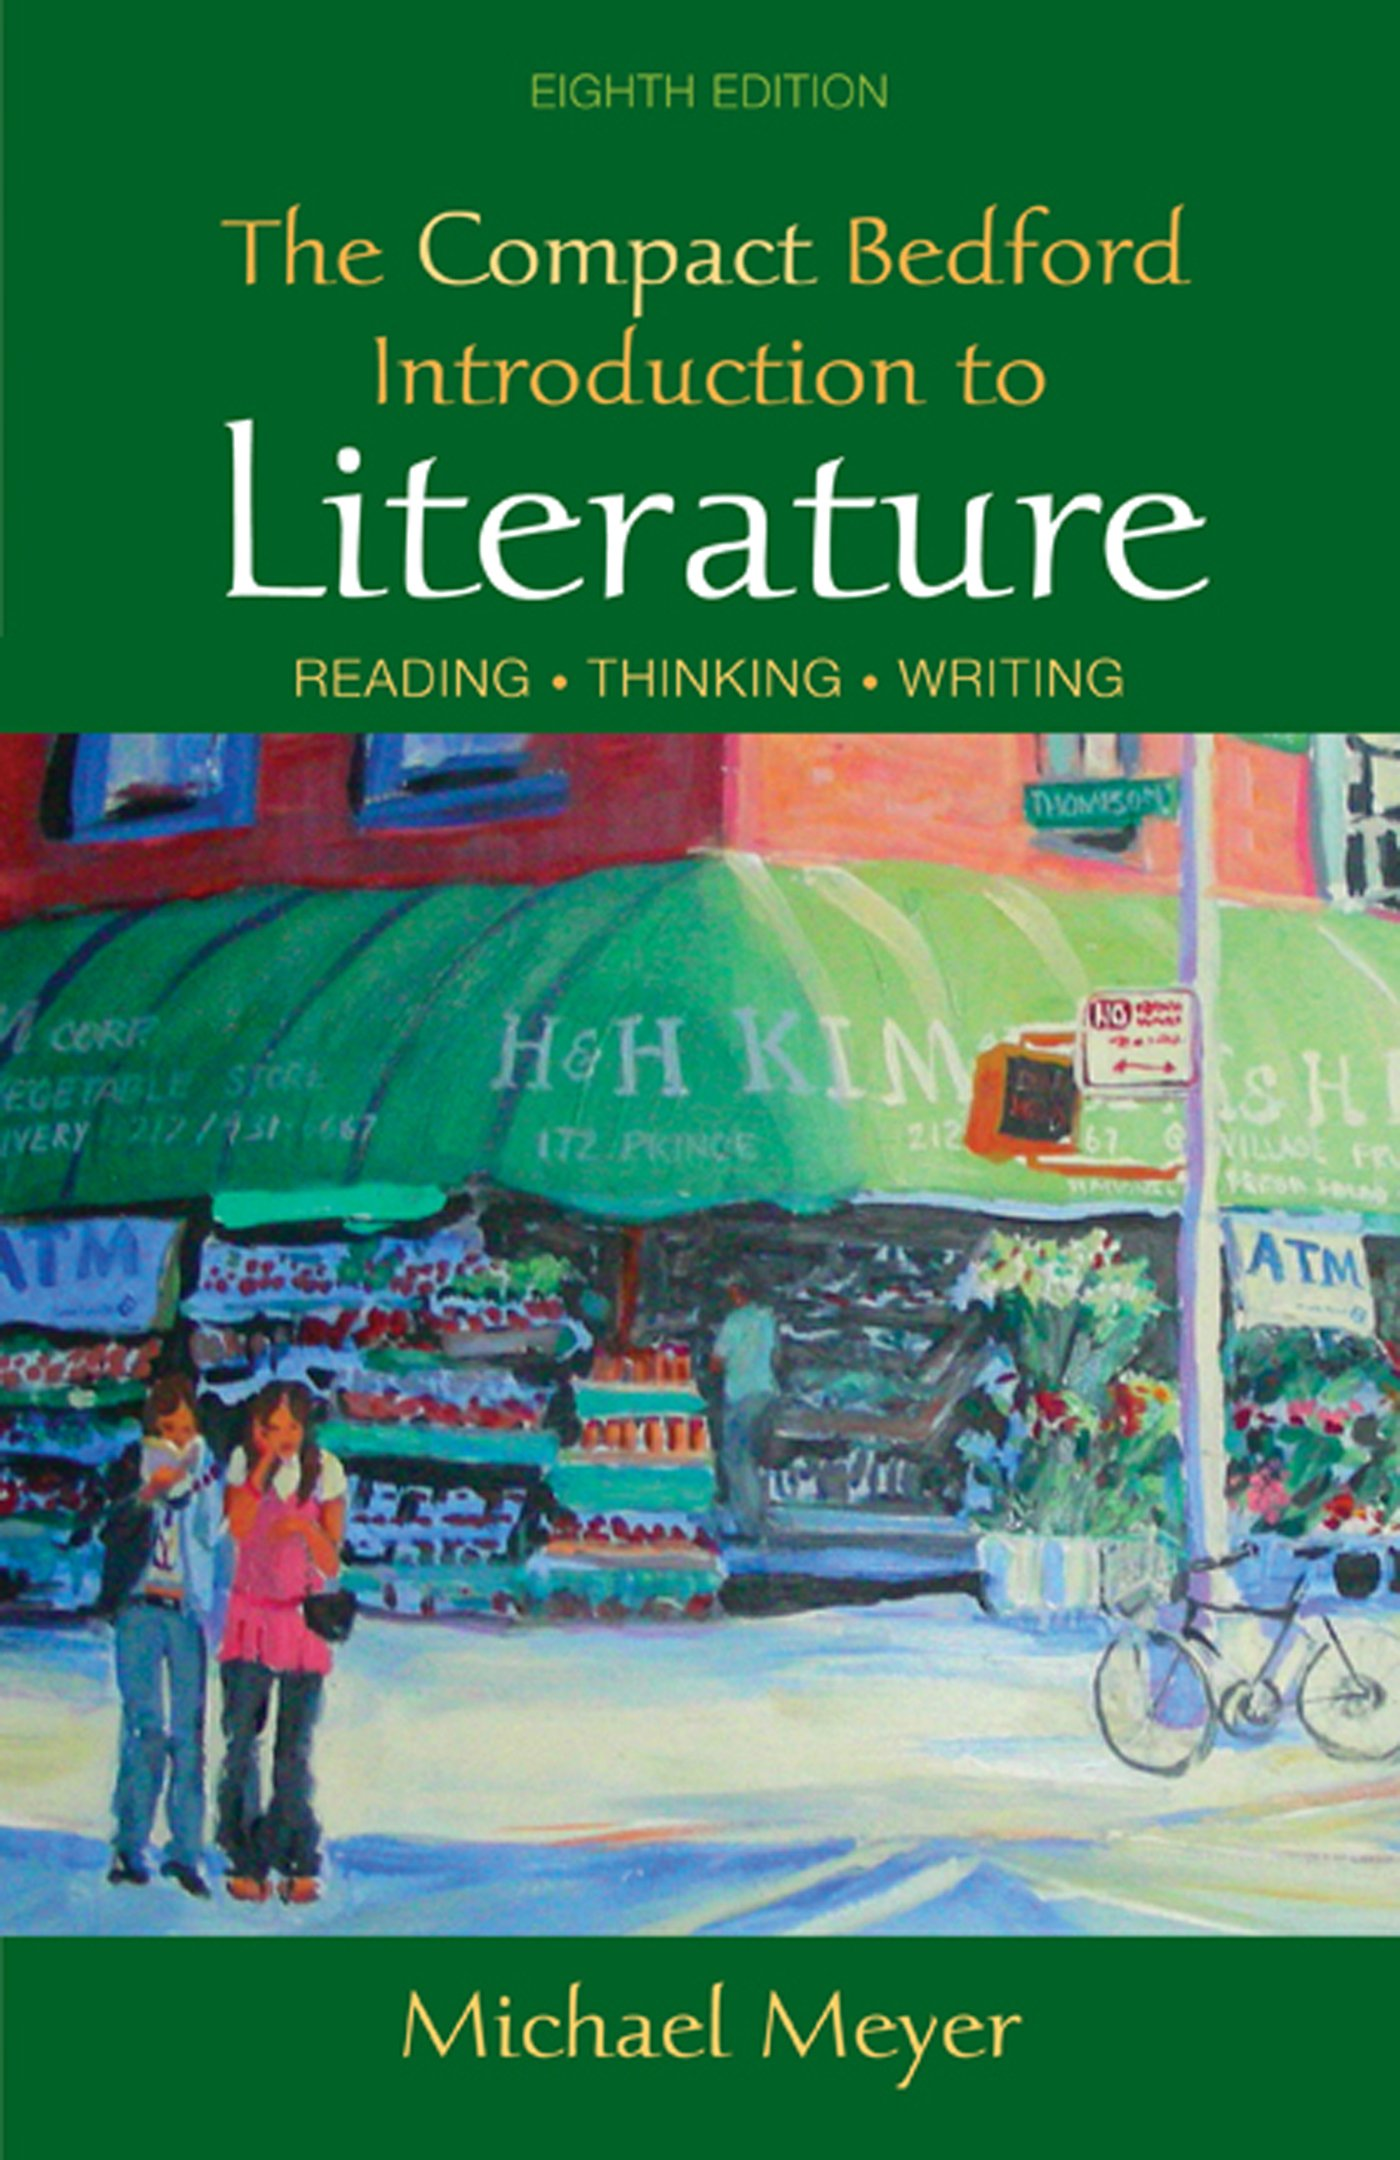 Compact Bedford Introduction to Literature: Michael Meyer: 9780312474119:  Amazon.com: Books